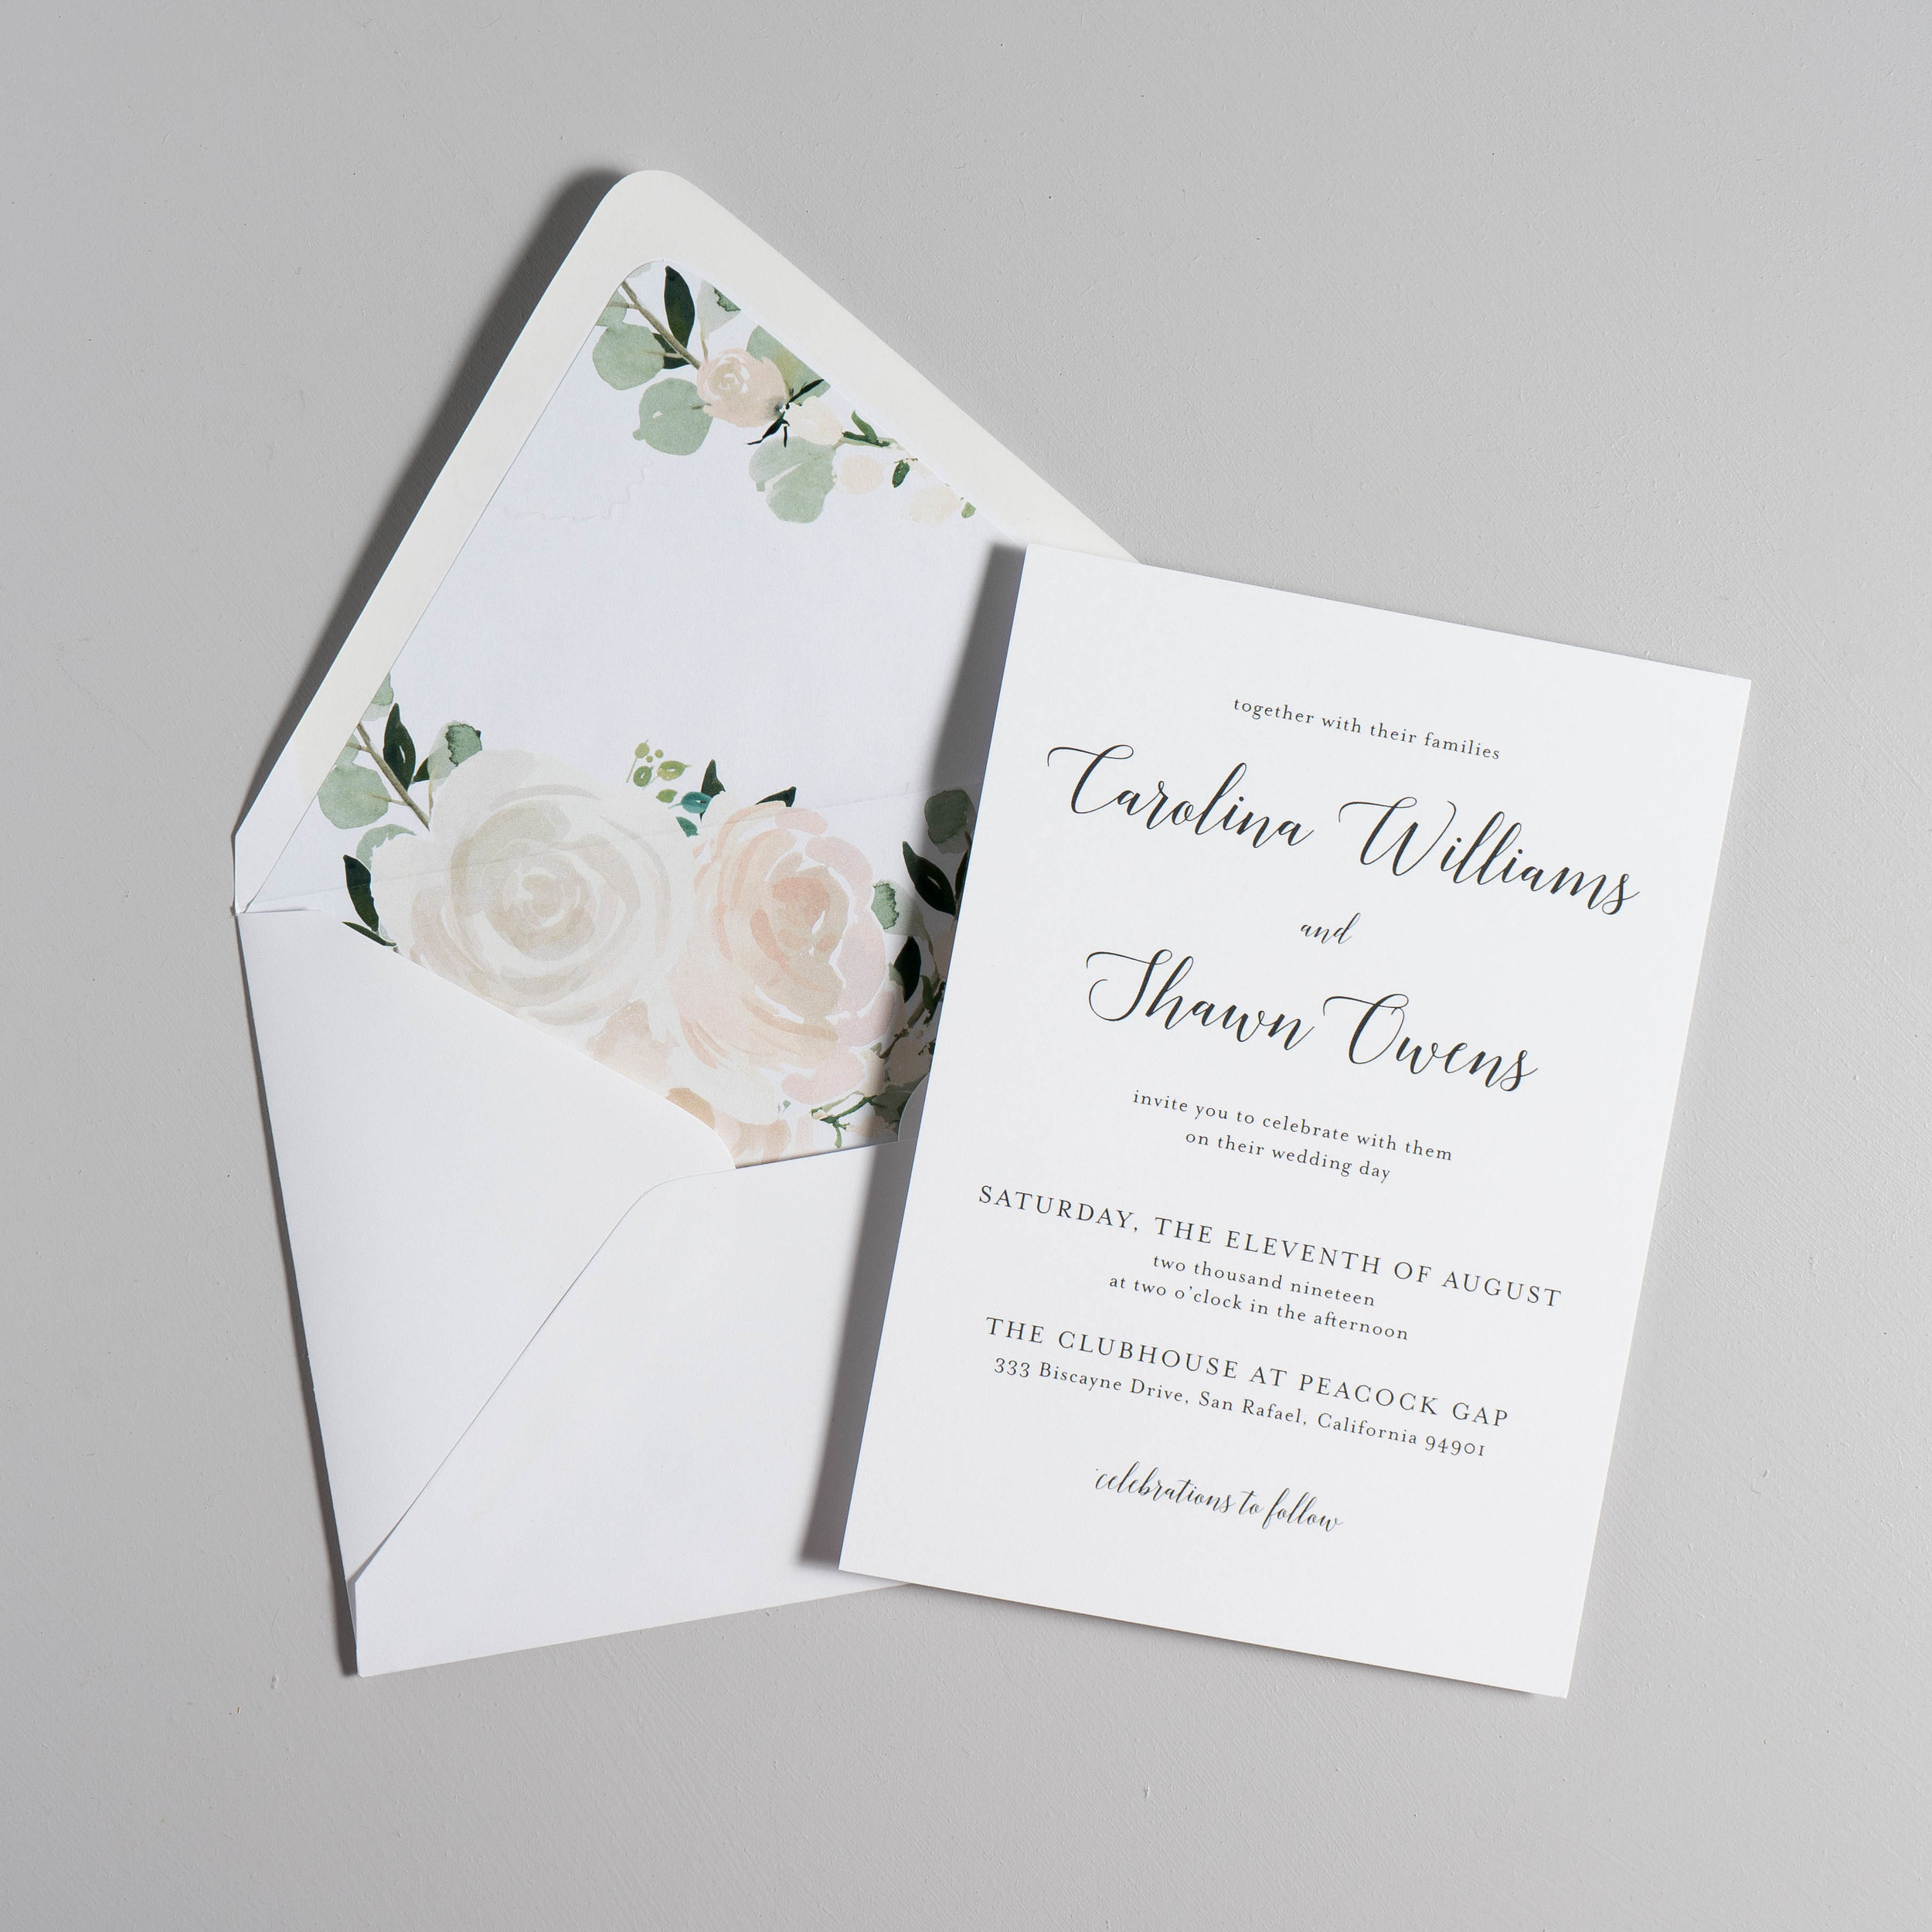 Blush Floral Calligraphy Wedding Invitations by Just Jurf-5.jpg